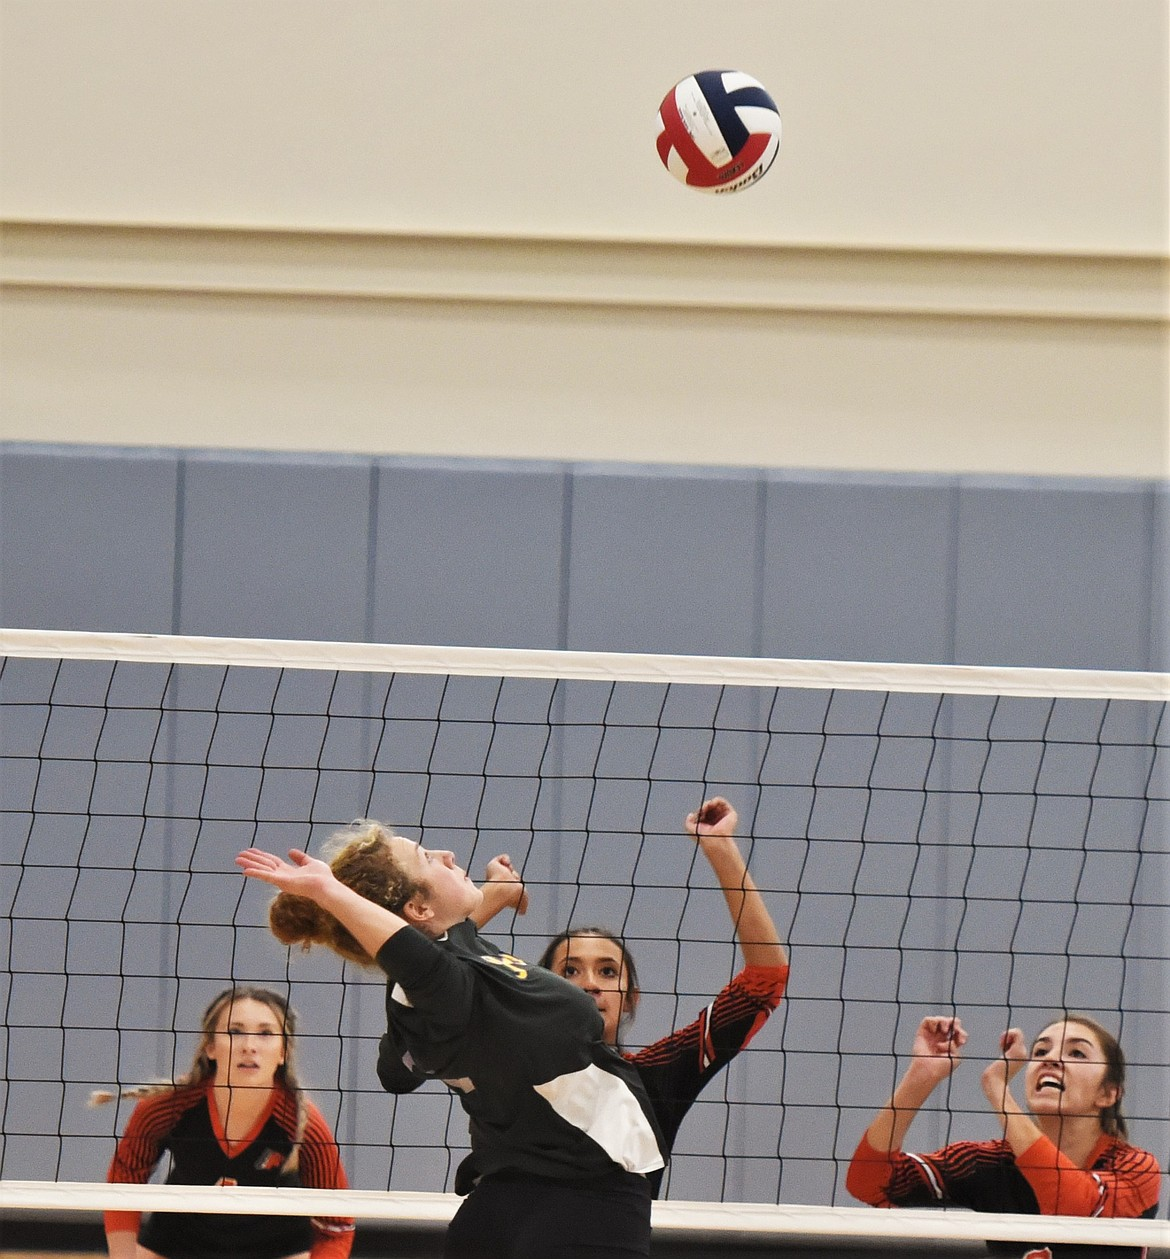 Polson's Camilla Foresti rises for a shot against the defense of Hannah Rowe (4), Leina Ulutoa, center, and Olivia Clairmont. (Scot Heisel/Lake County Leader)